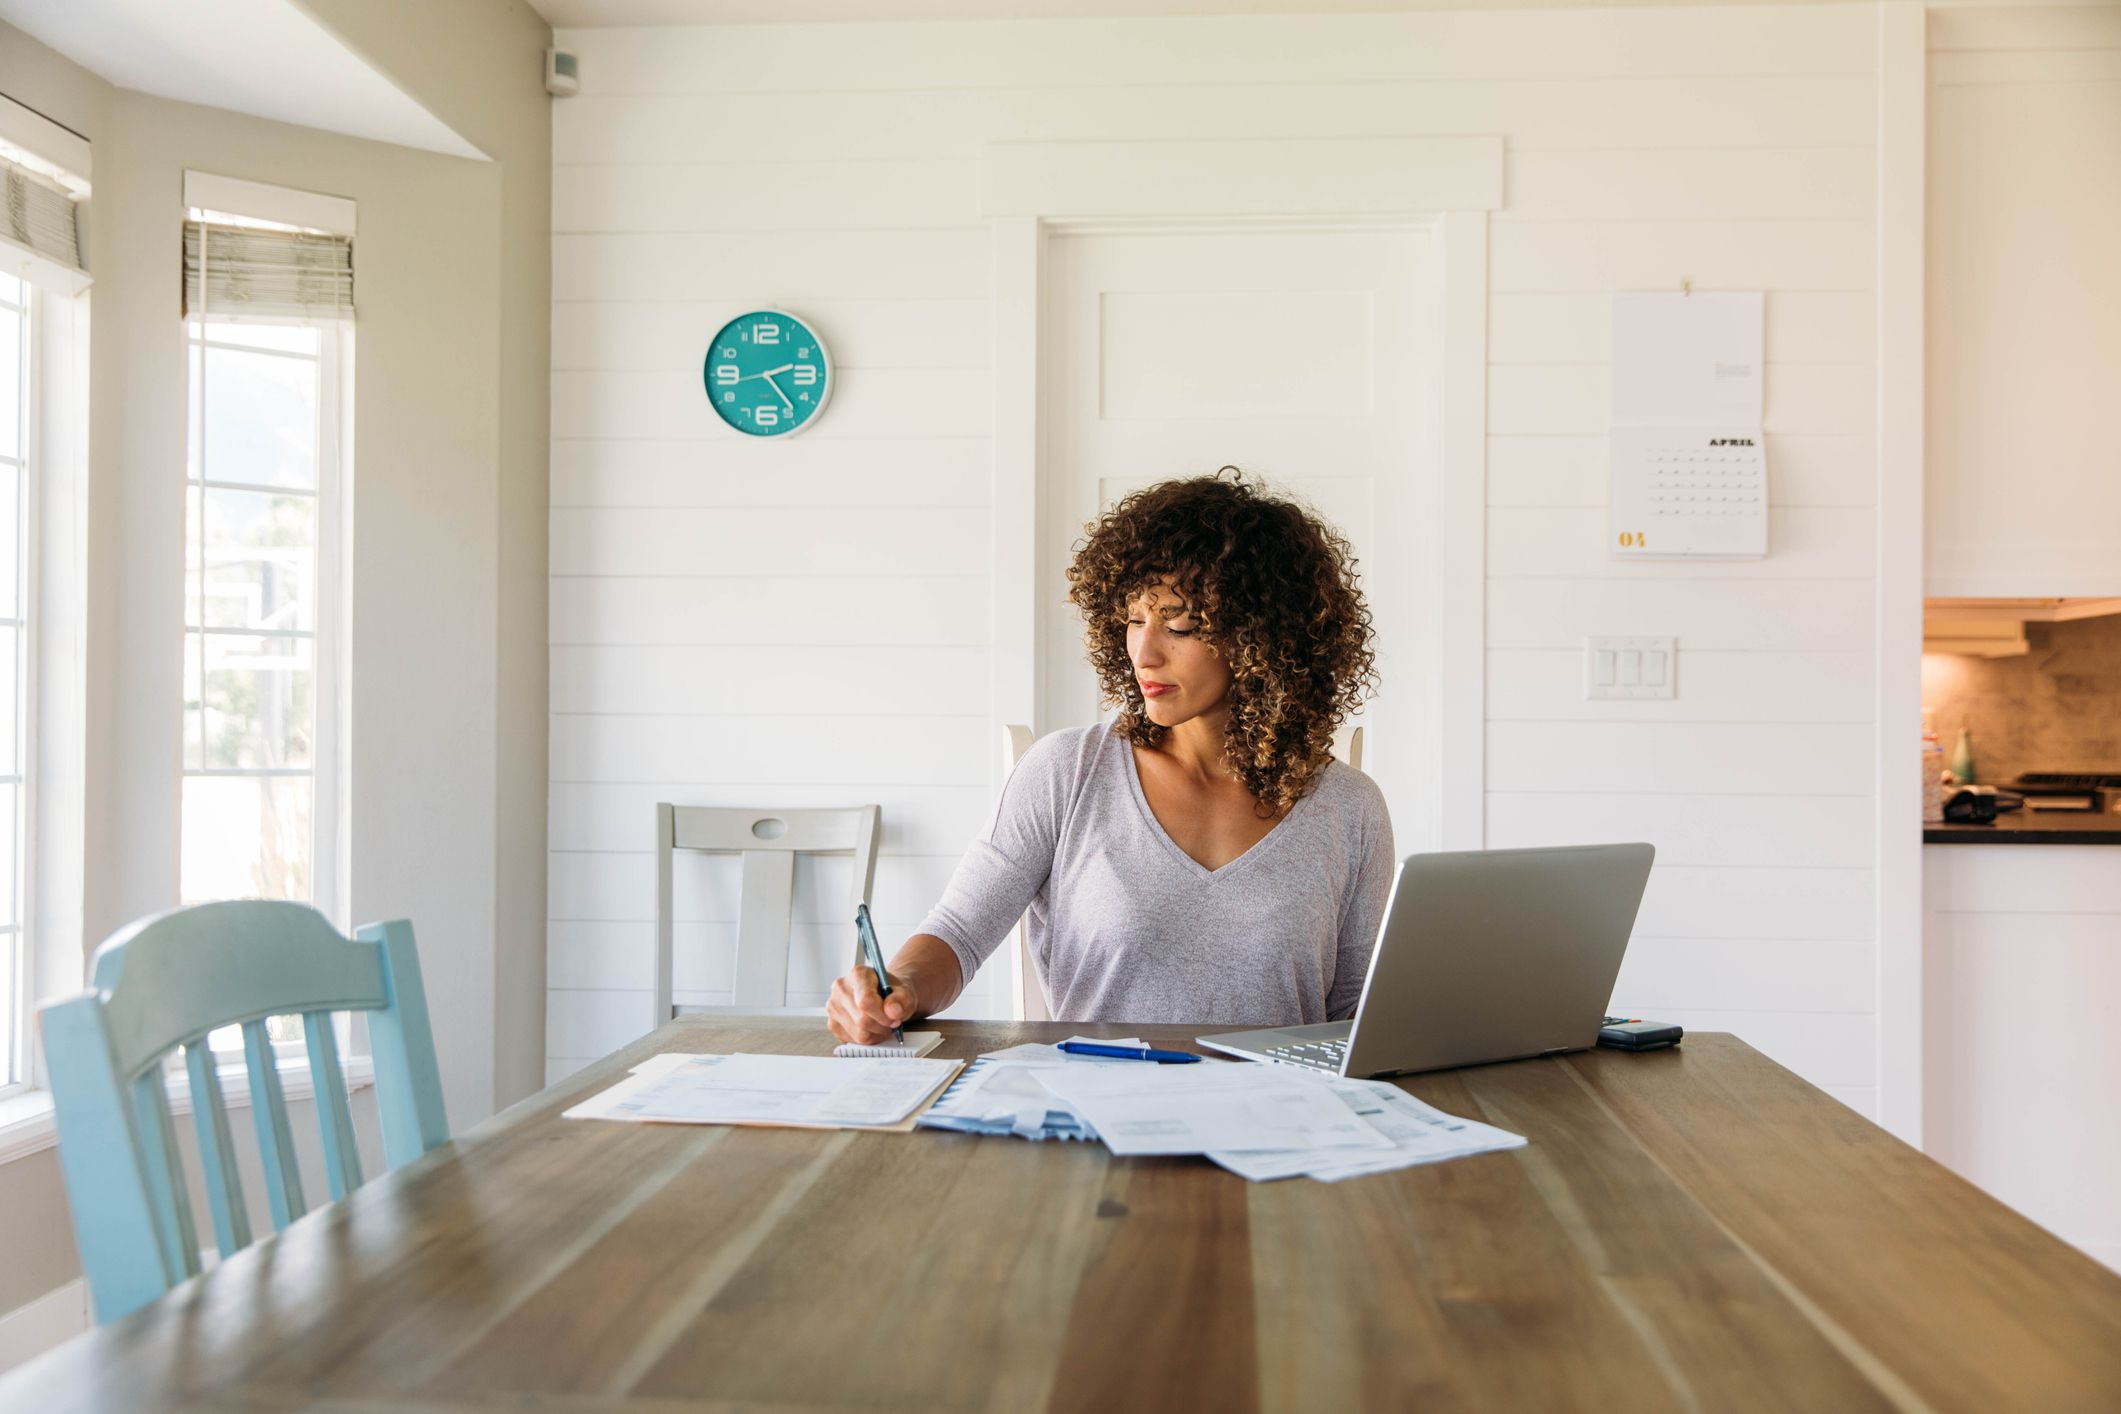 How to Practice Financial Self-Care With Positive Money Habits